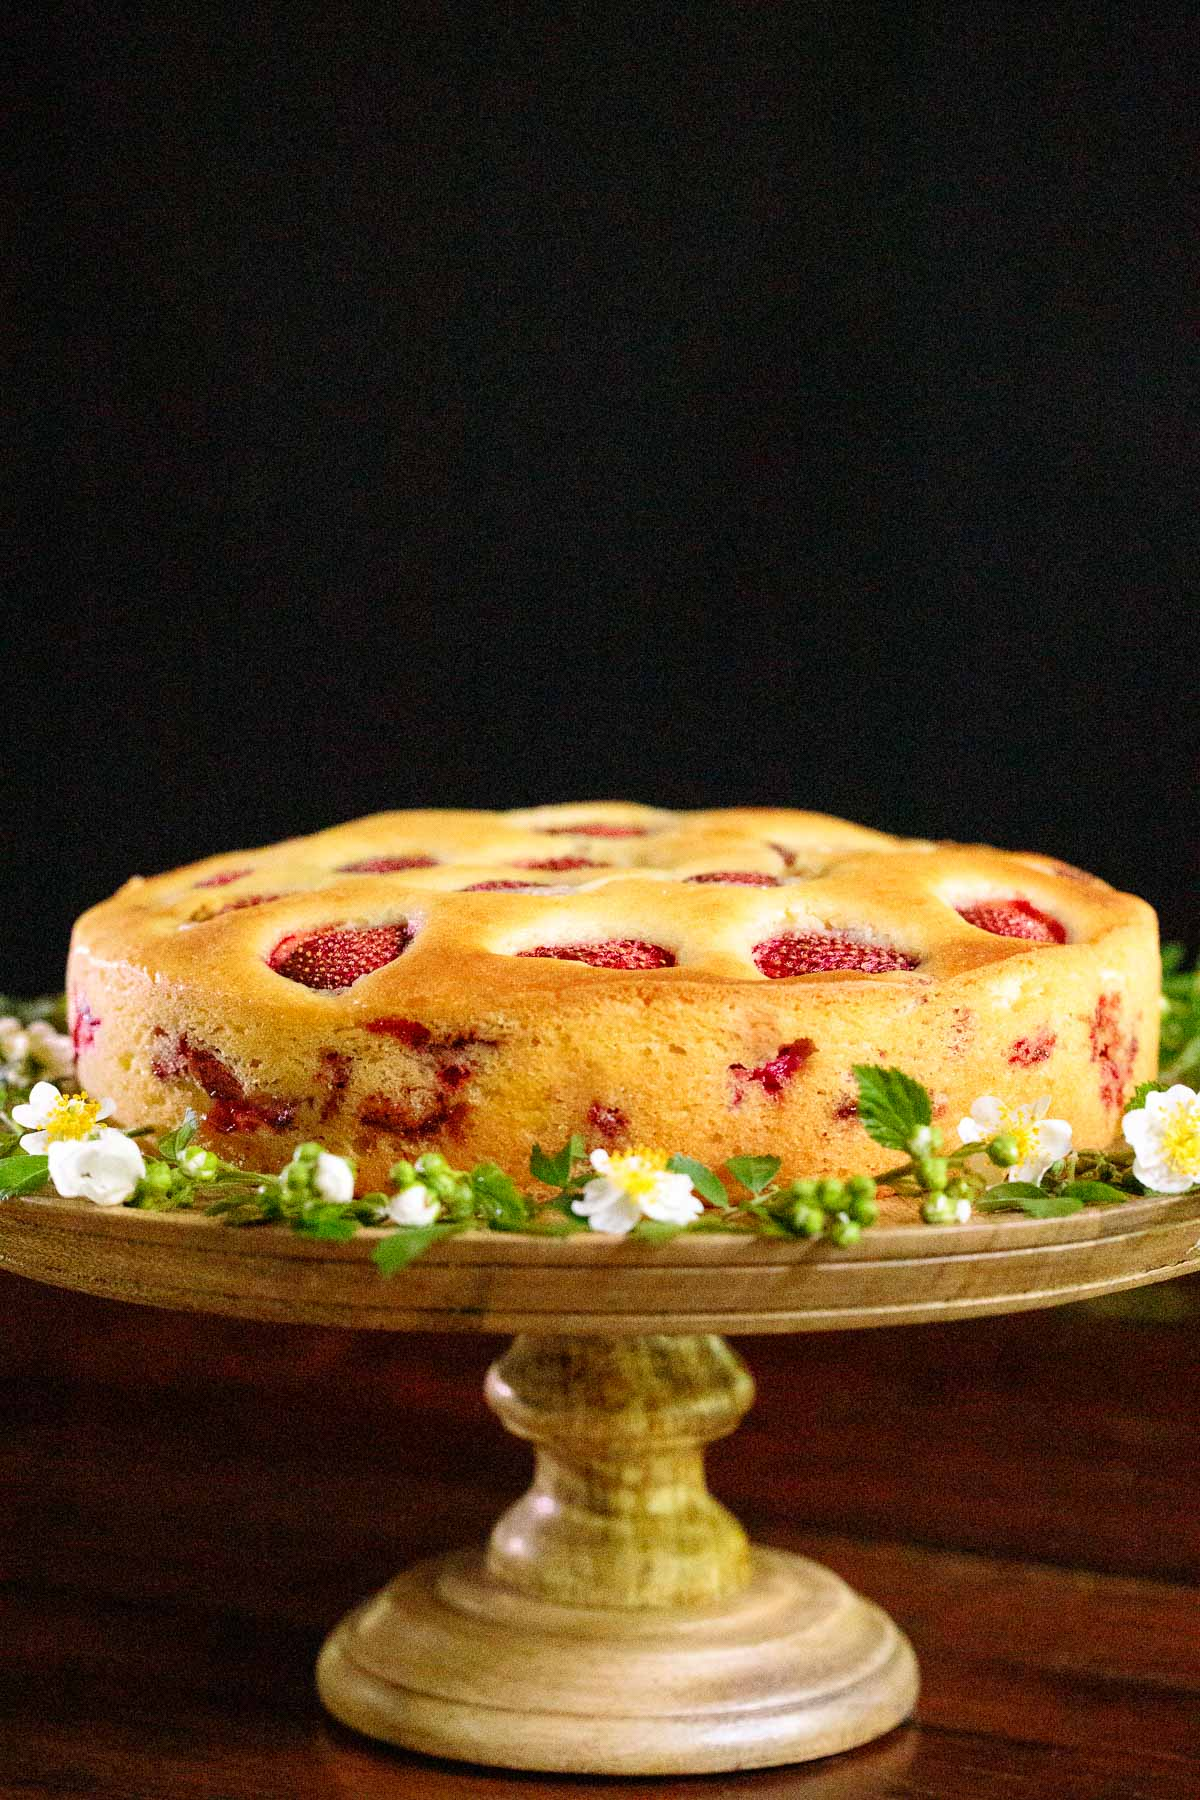 Vertical photo of a Ridiculously Easy Fresh Strawberry Cake on a wood platter against a black background.